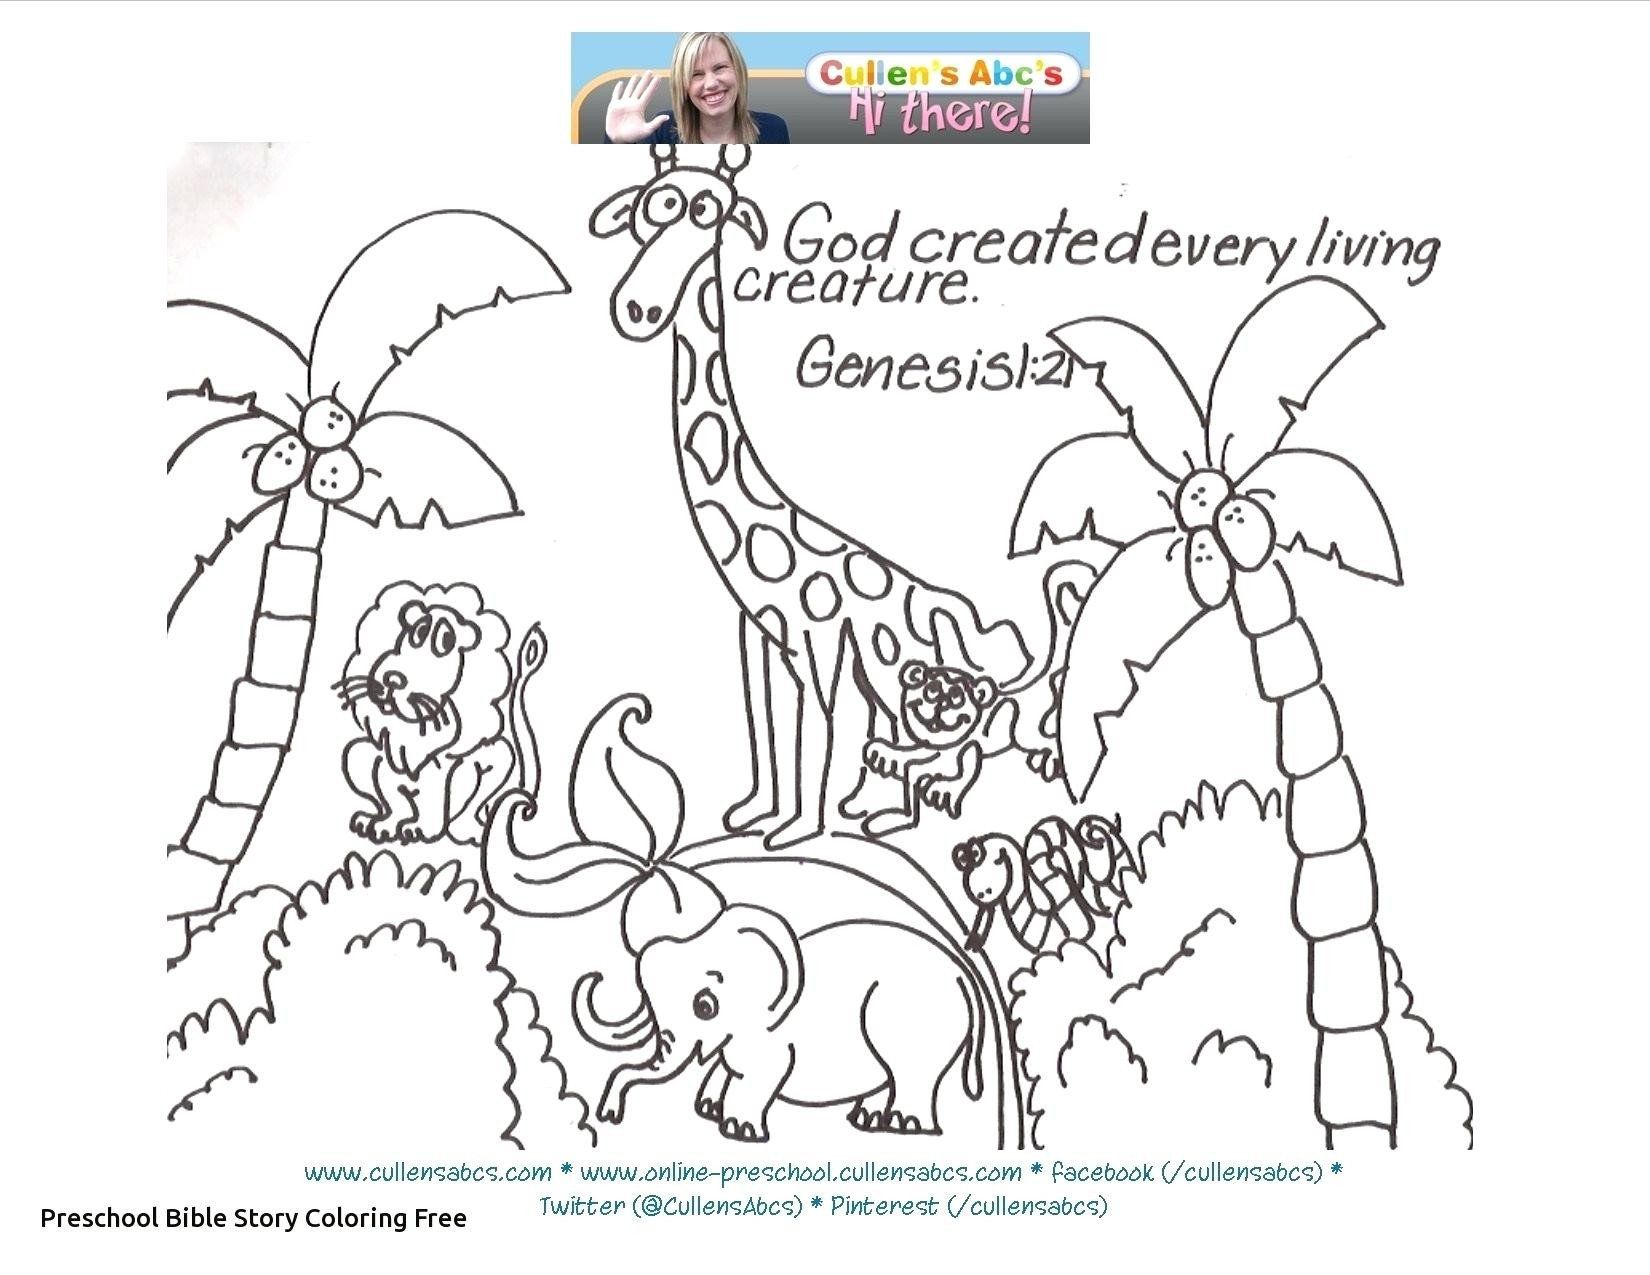 Days Of Creation Coloring Pages Lovely Days Of Creation Coloring Pages Sunraysheet In 2020 Creation Coloring Pages Thanksgiving Coloring Pages Bible Coloring Pages